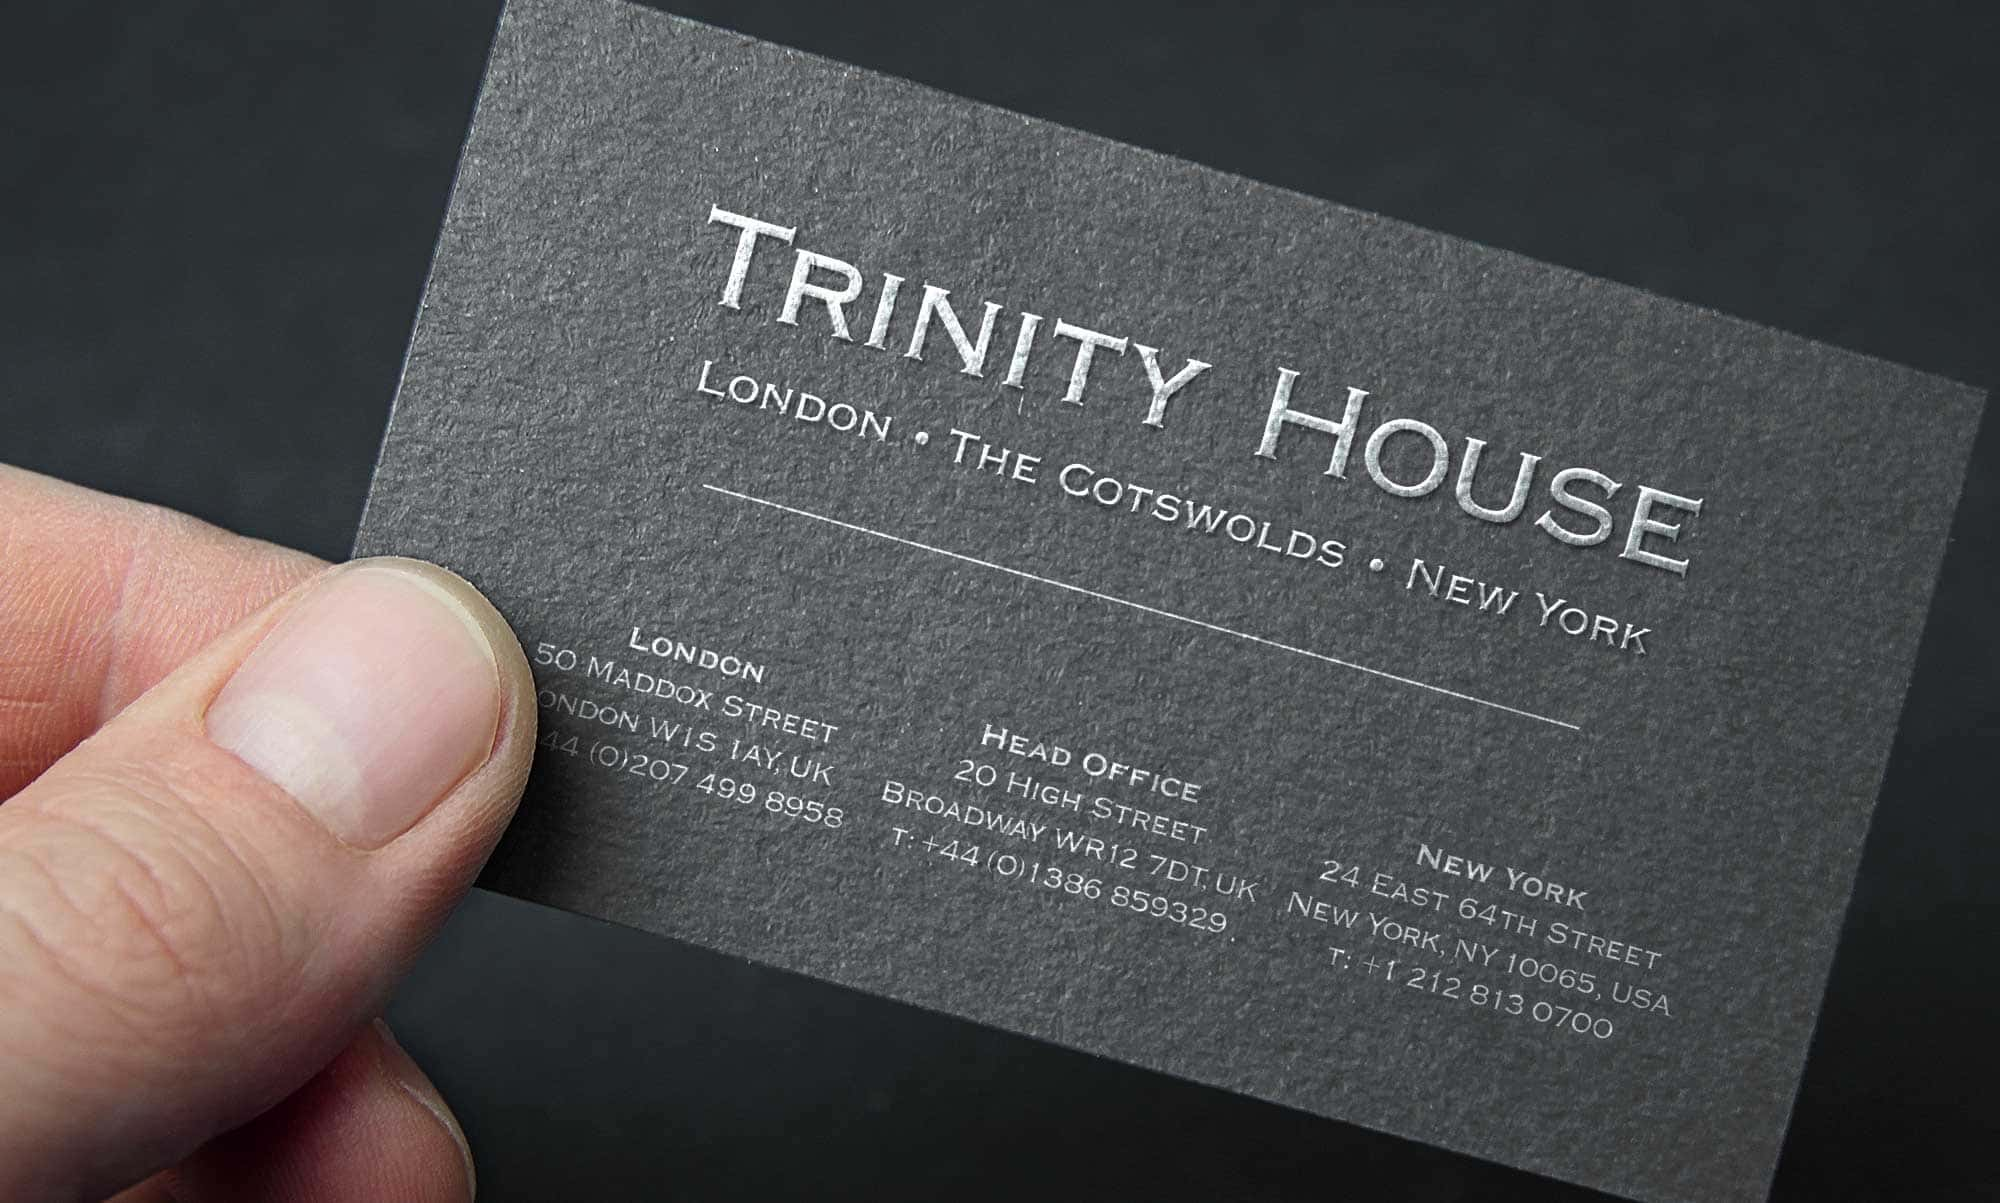 High Quality Embossed Business Card Design and Print - Trinity House Paintings